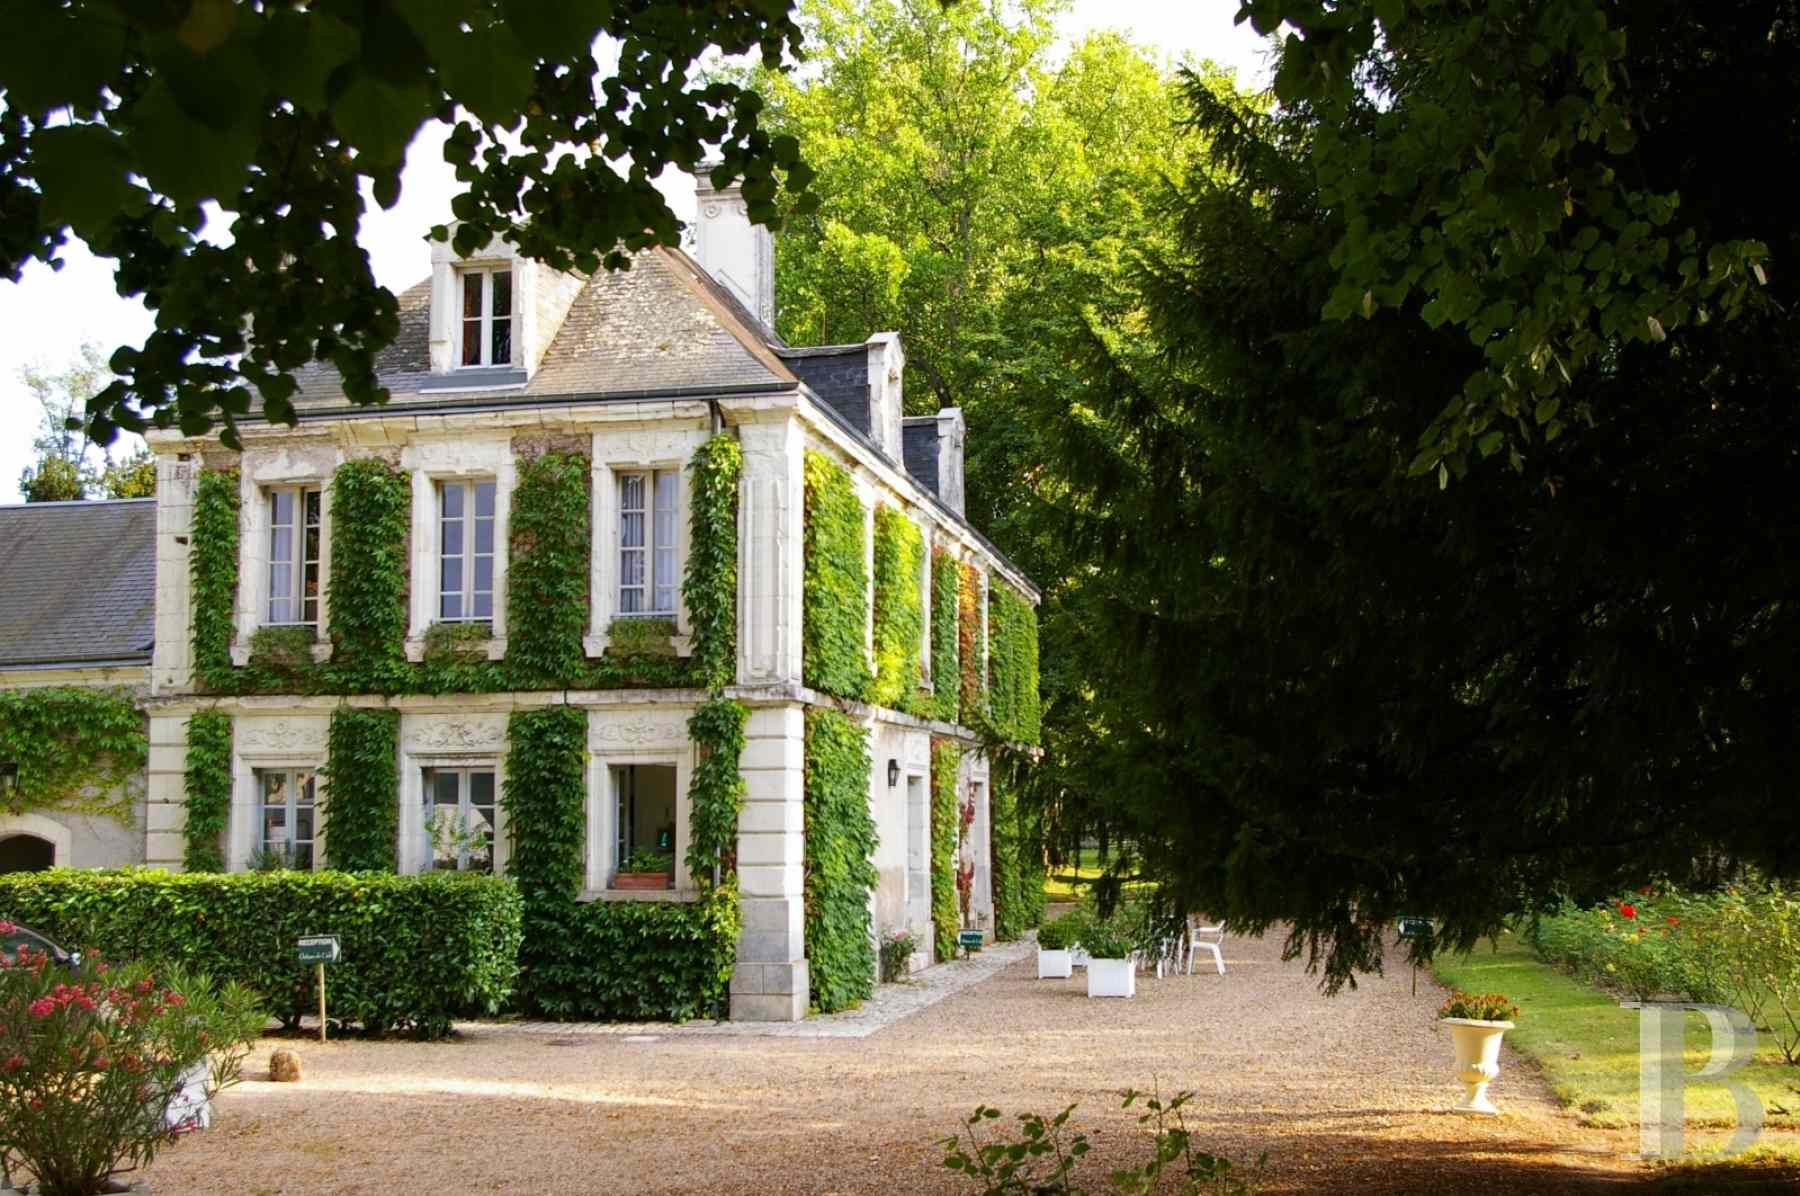 property for sale France center val de loire chenonceau guesthouse - 2 zoom